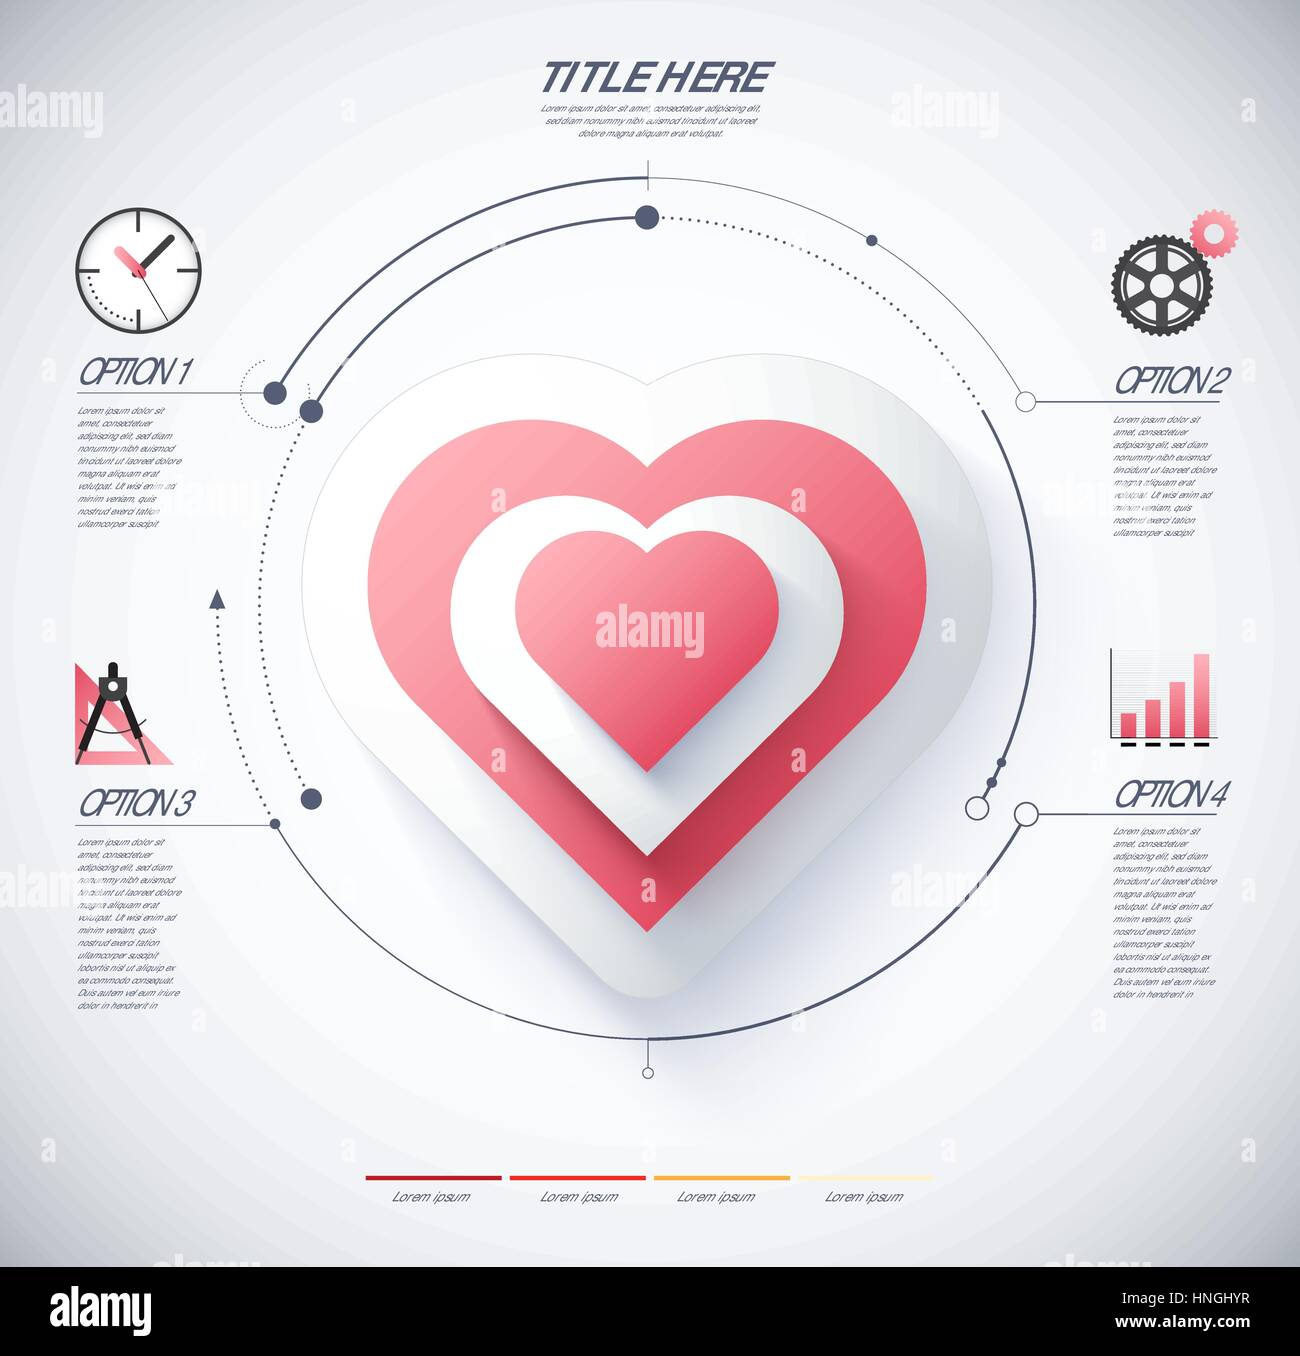 Infographic diagram heart love concept stock photos infographic infographic diagram of heart and love concept included icon and sample text vector infographic ccuart Image collections